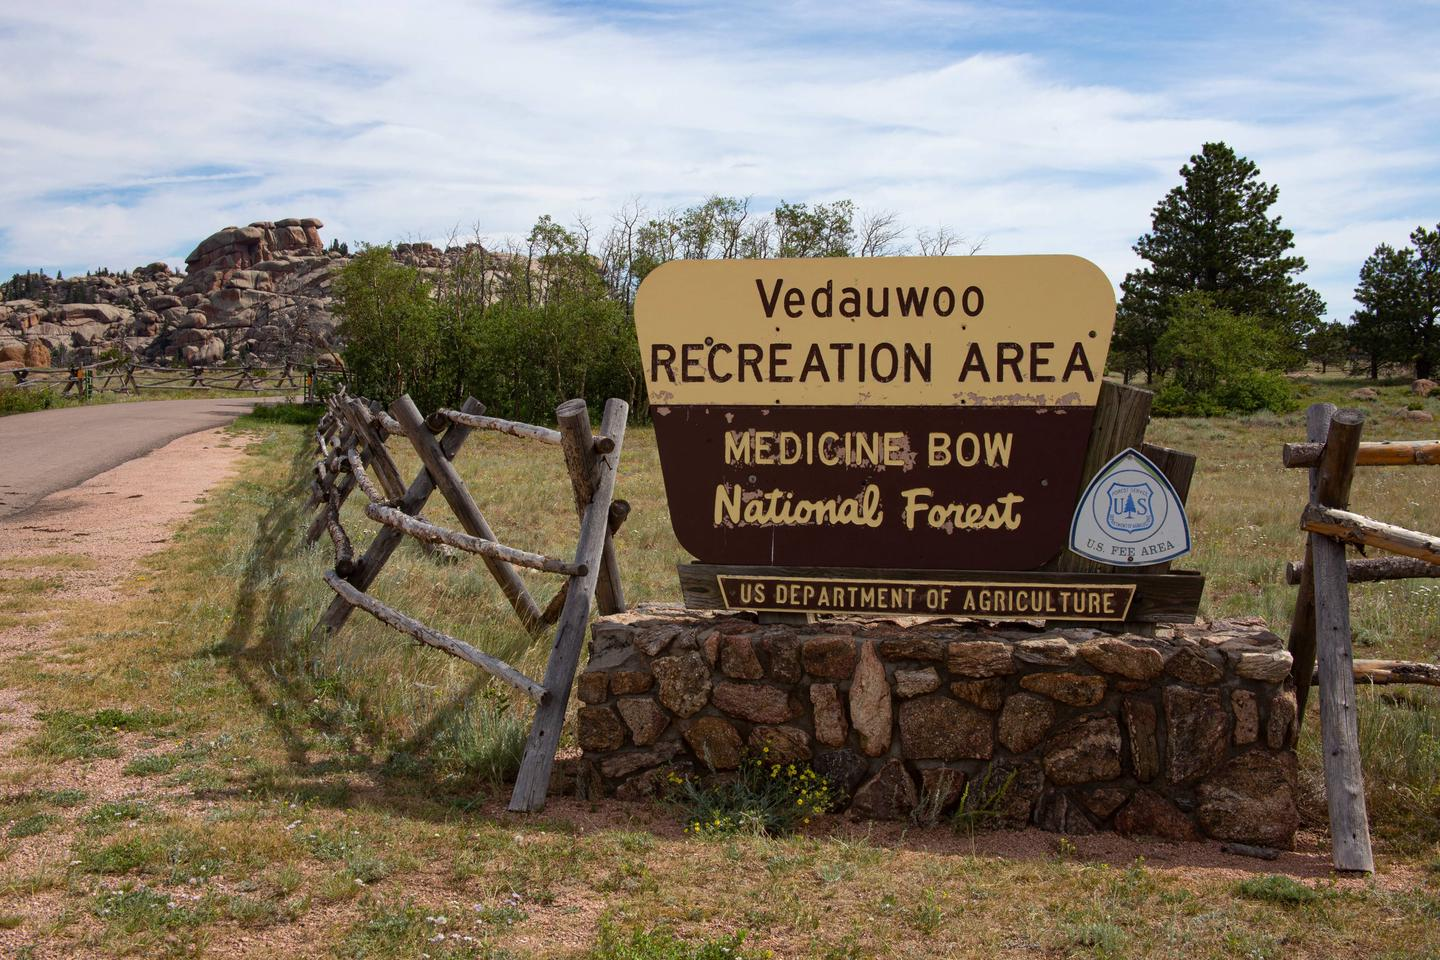 Vedauwoo Recreation Area entrance